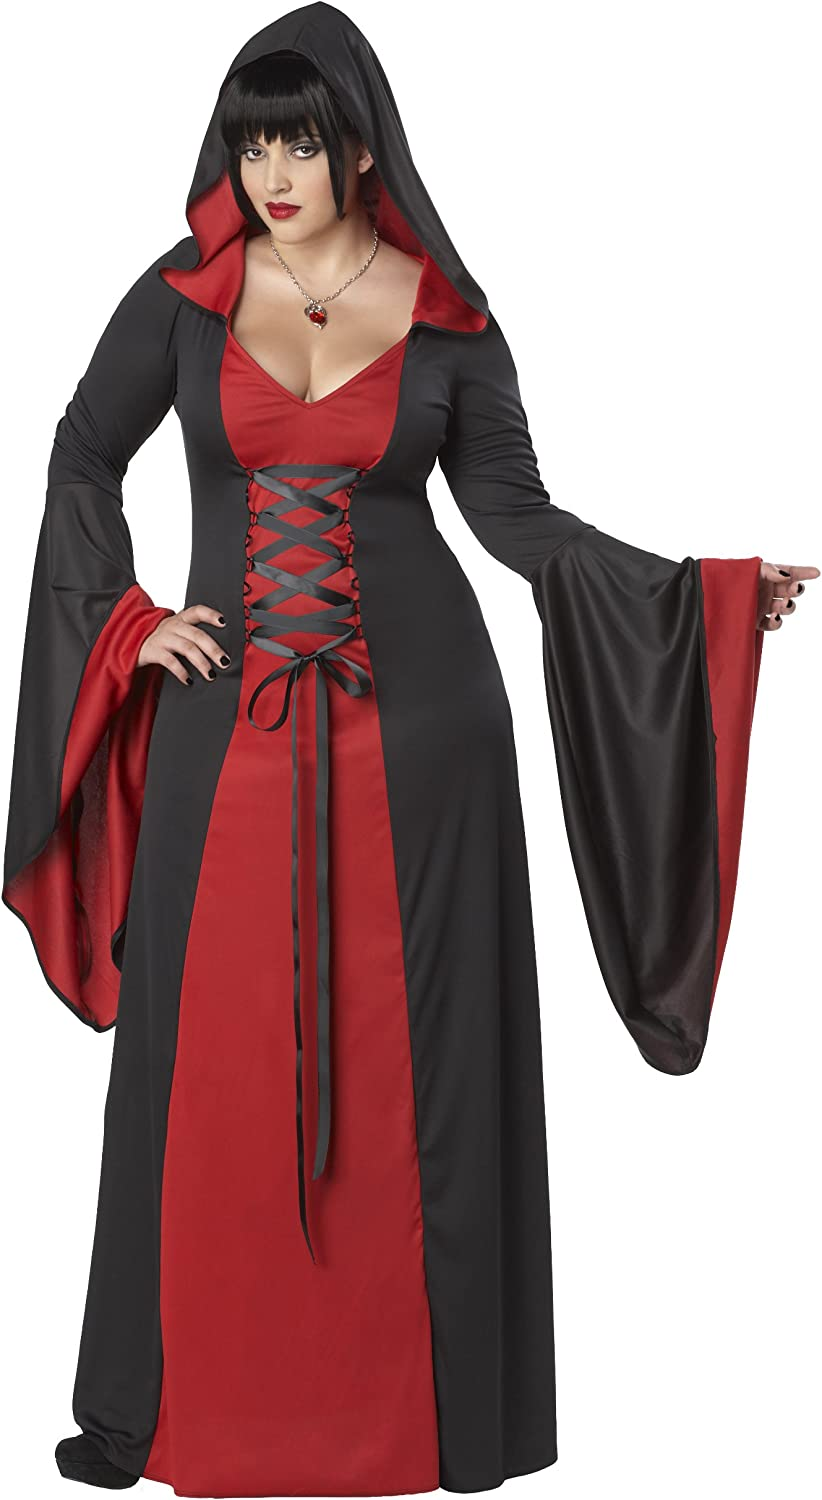 California Costumes Plus-Size Deluxe Hooded Robe Costume